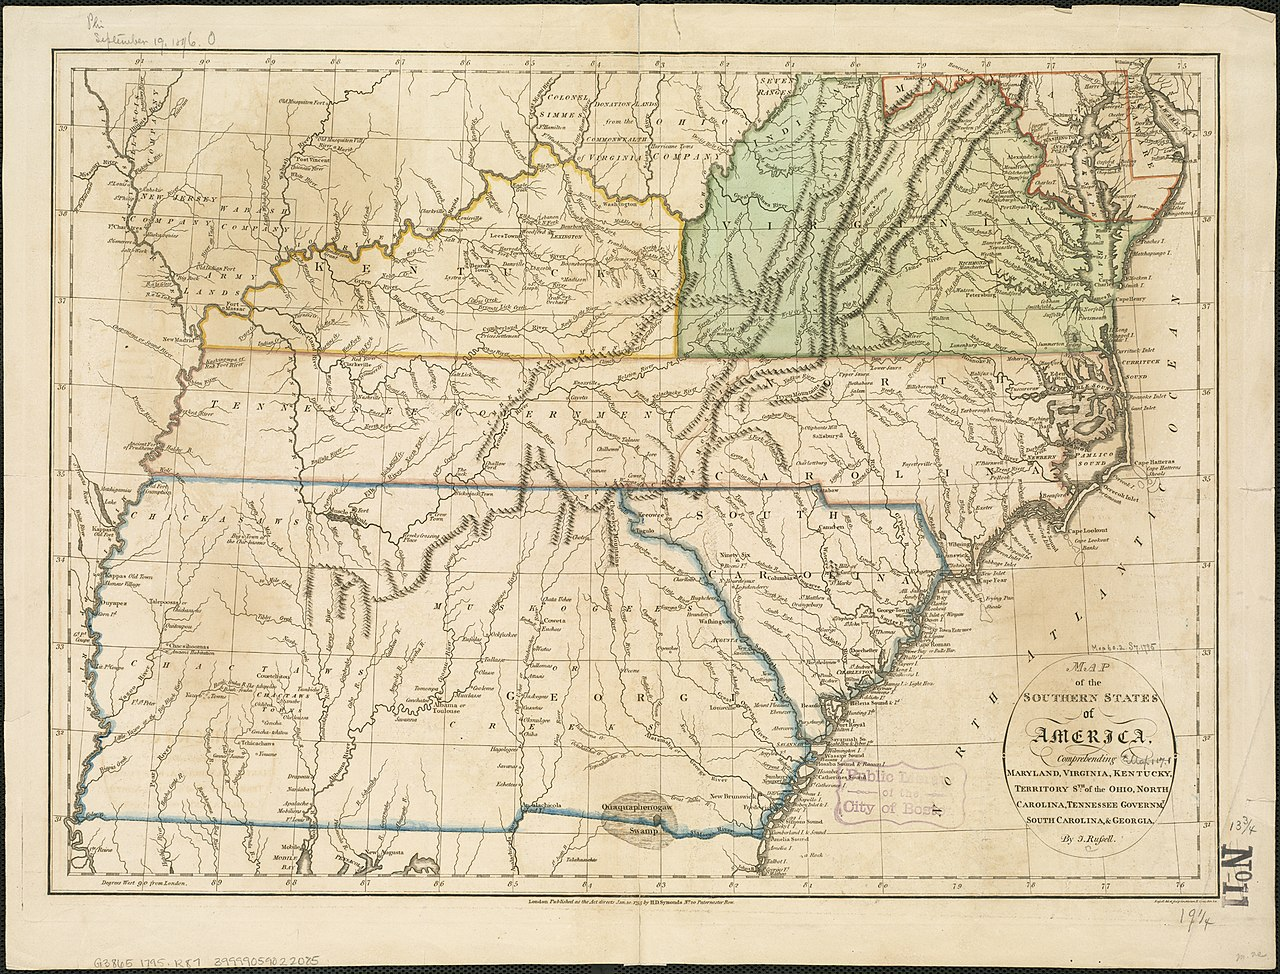 File:map Of The Southern States Of America,prehending Maryland,  Virginia, Kentucky, Territory Sth Of The Ohio, North Carolina, Tennessee  Governmt,